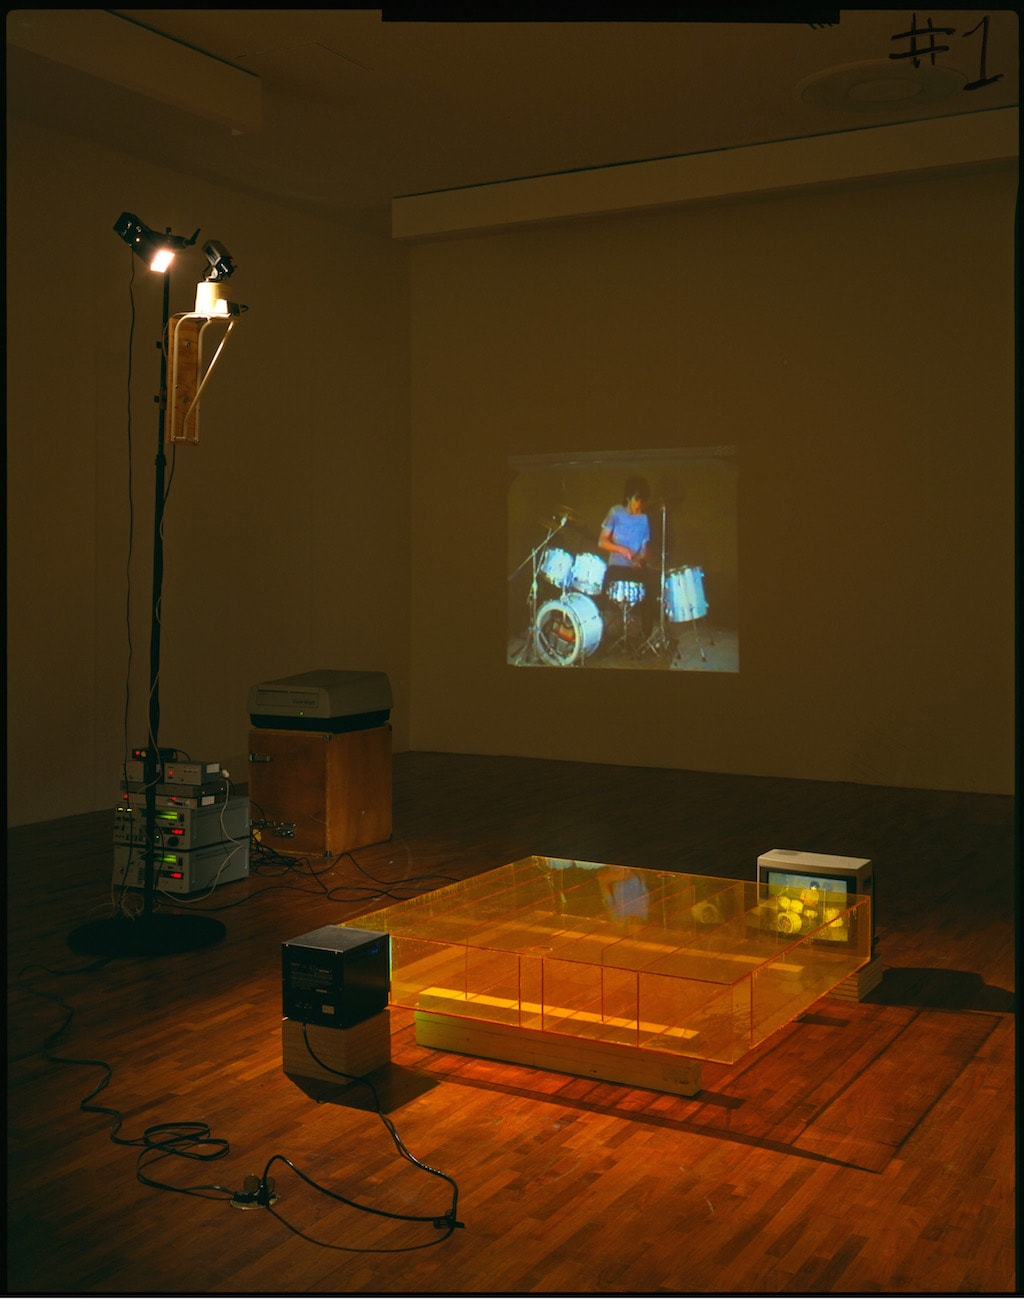 Bruce Nauman,<i>Learned Helplessness in Rats </i>(<i>Rock and Roll Drummer</i>),1988. © 2015 Bruce Nauman/Artists Rights Society (ARS), New York